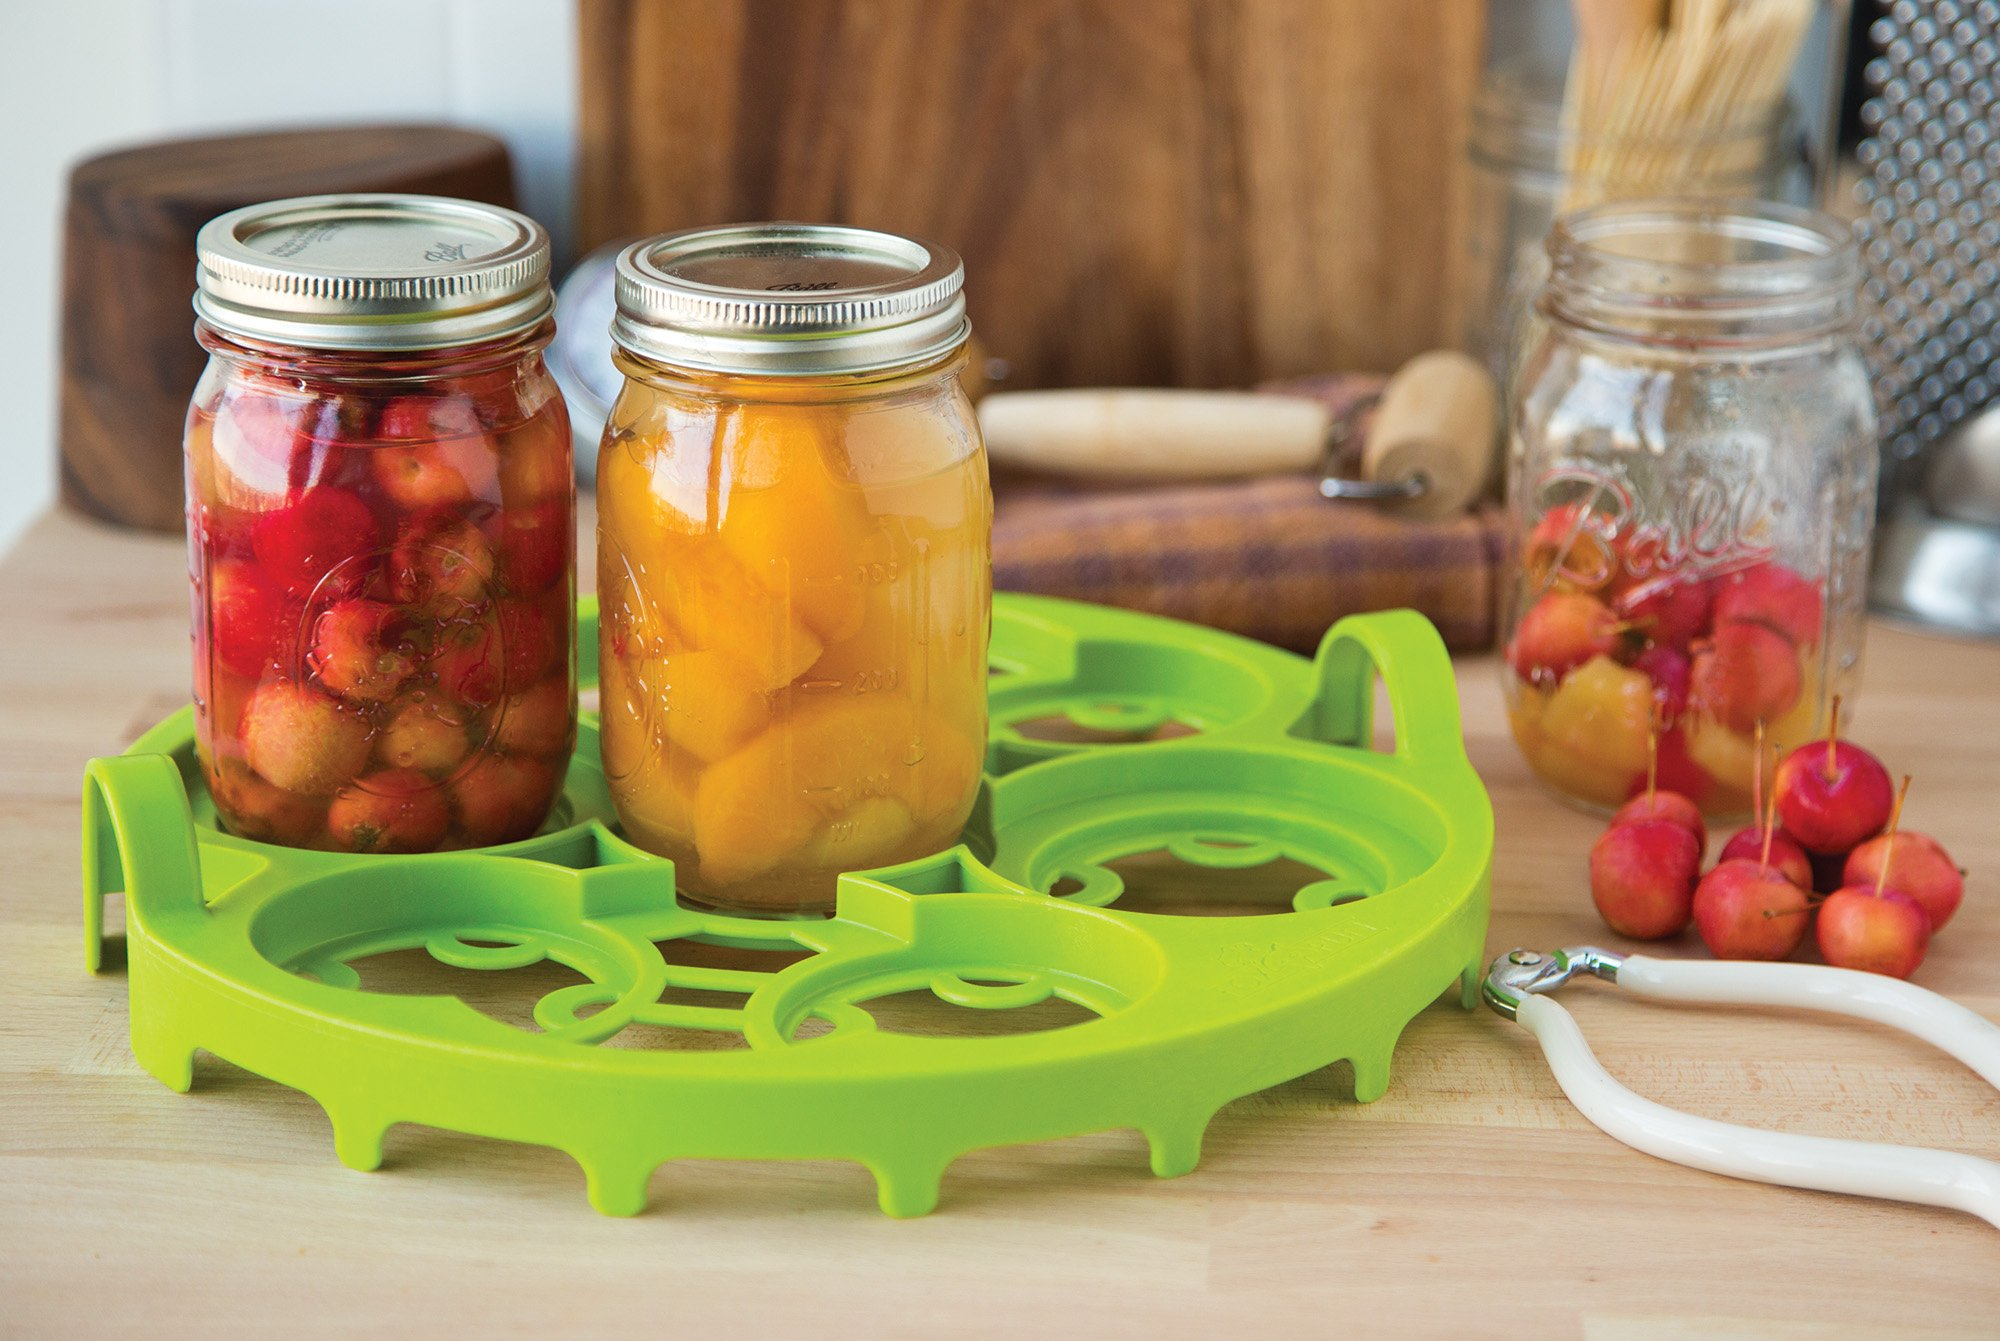 Farm to Table 52510 Dual Canning Rack, Nylon, Quart or Pint Sizes by Farm to Table (Image #2)